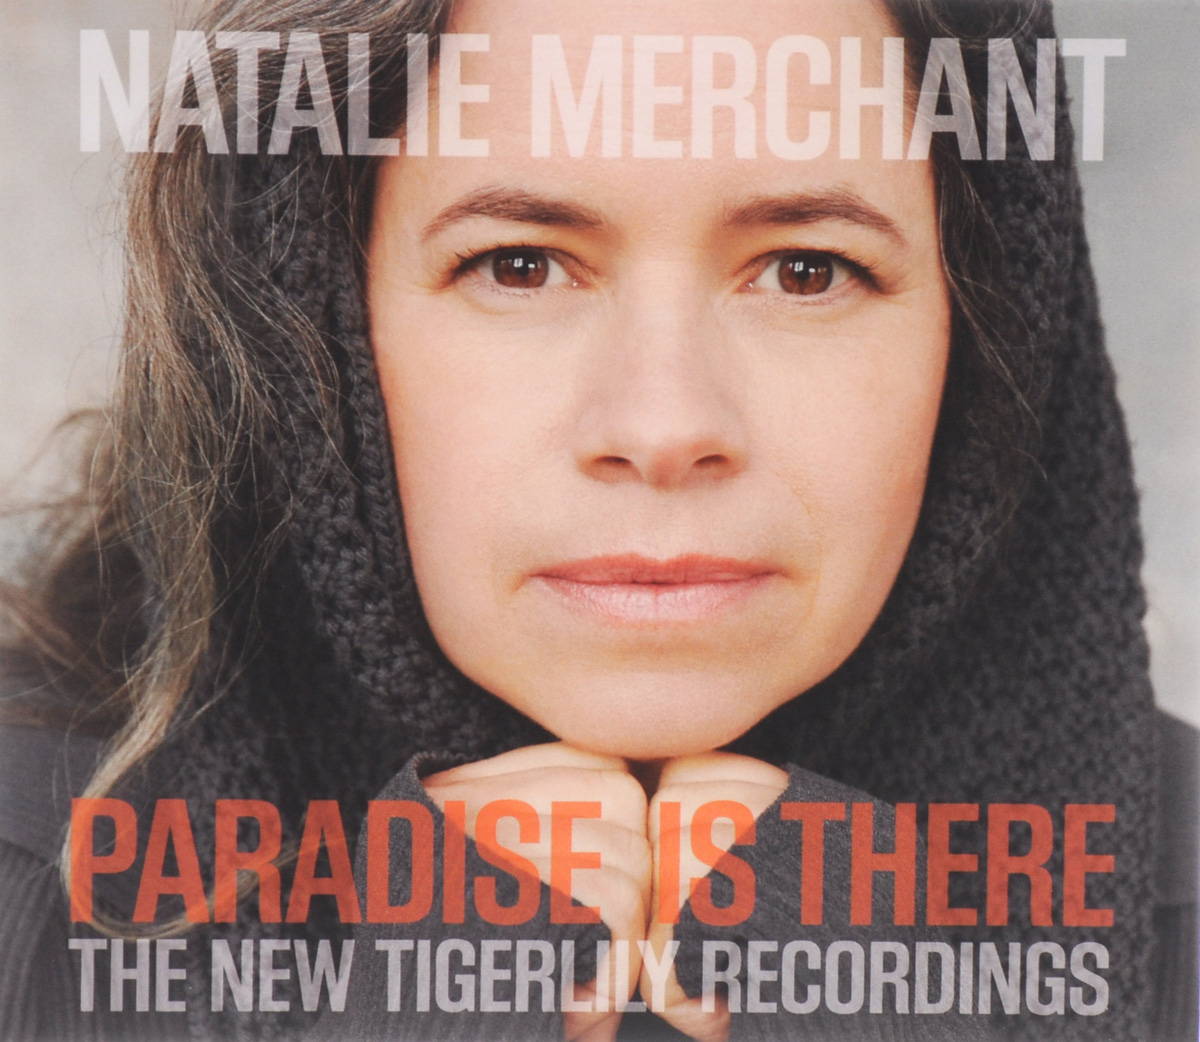 Натали Мерчант Natalie Merchant. Paradise Is There. The New Tigerlily Recordings виниловая пластинка project ritual noise natalie merchant paradise is there the new tigerlily recordings 2lp